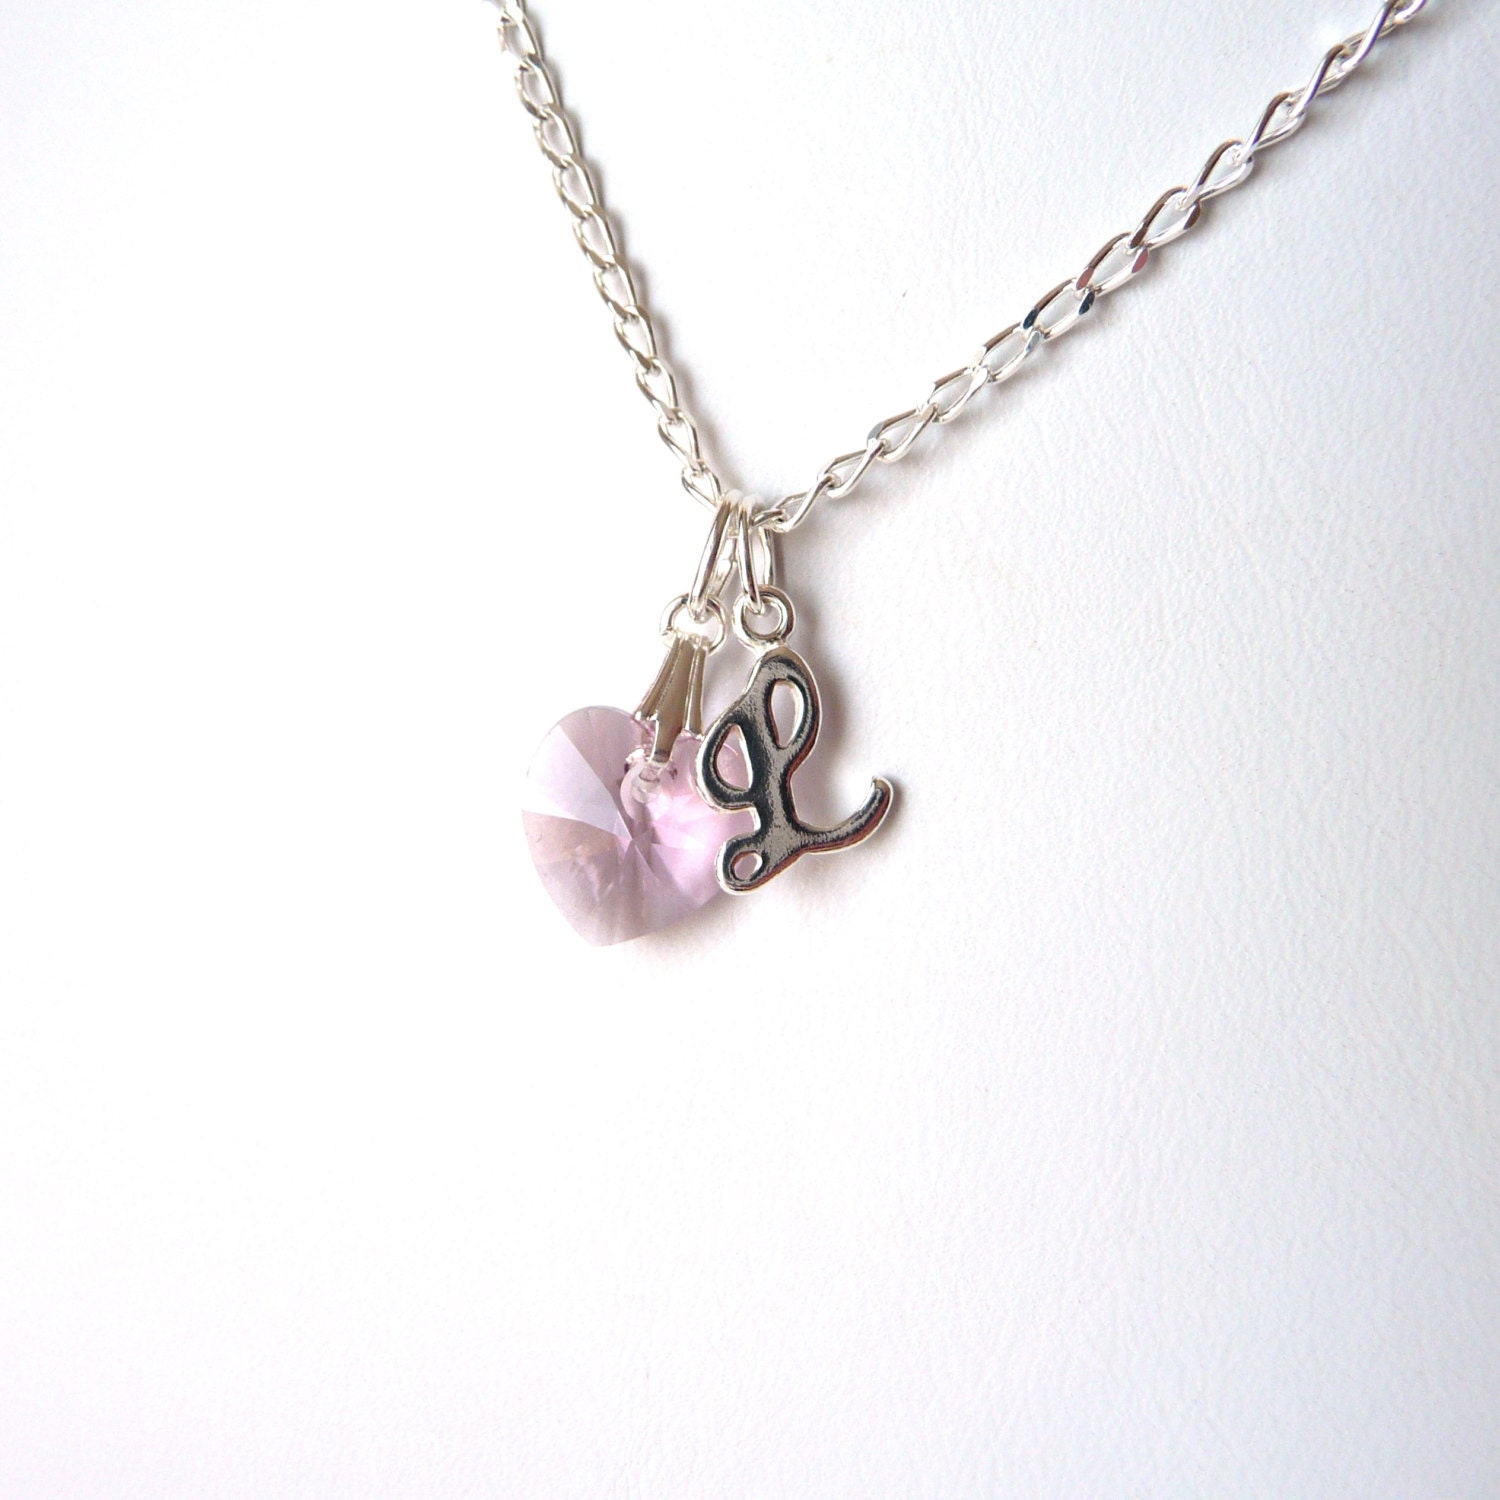 Girls Initial Necklace June Birthstone Necklace Sterling